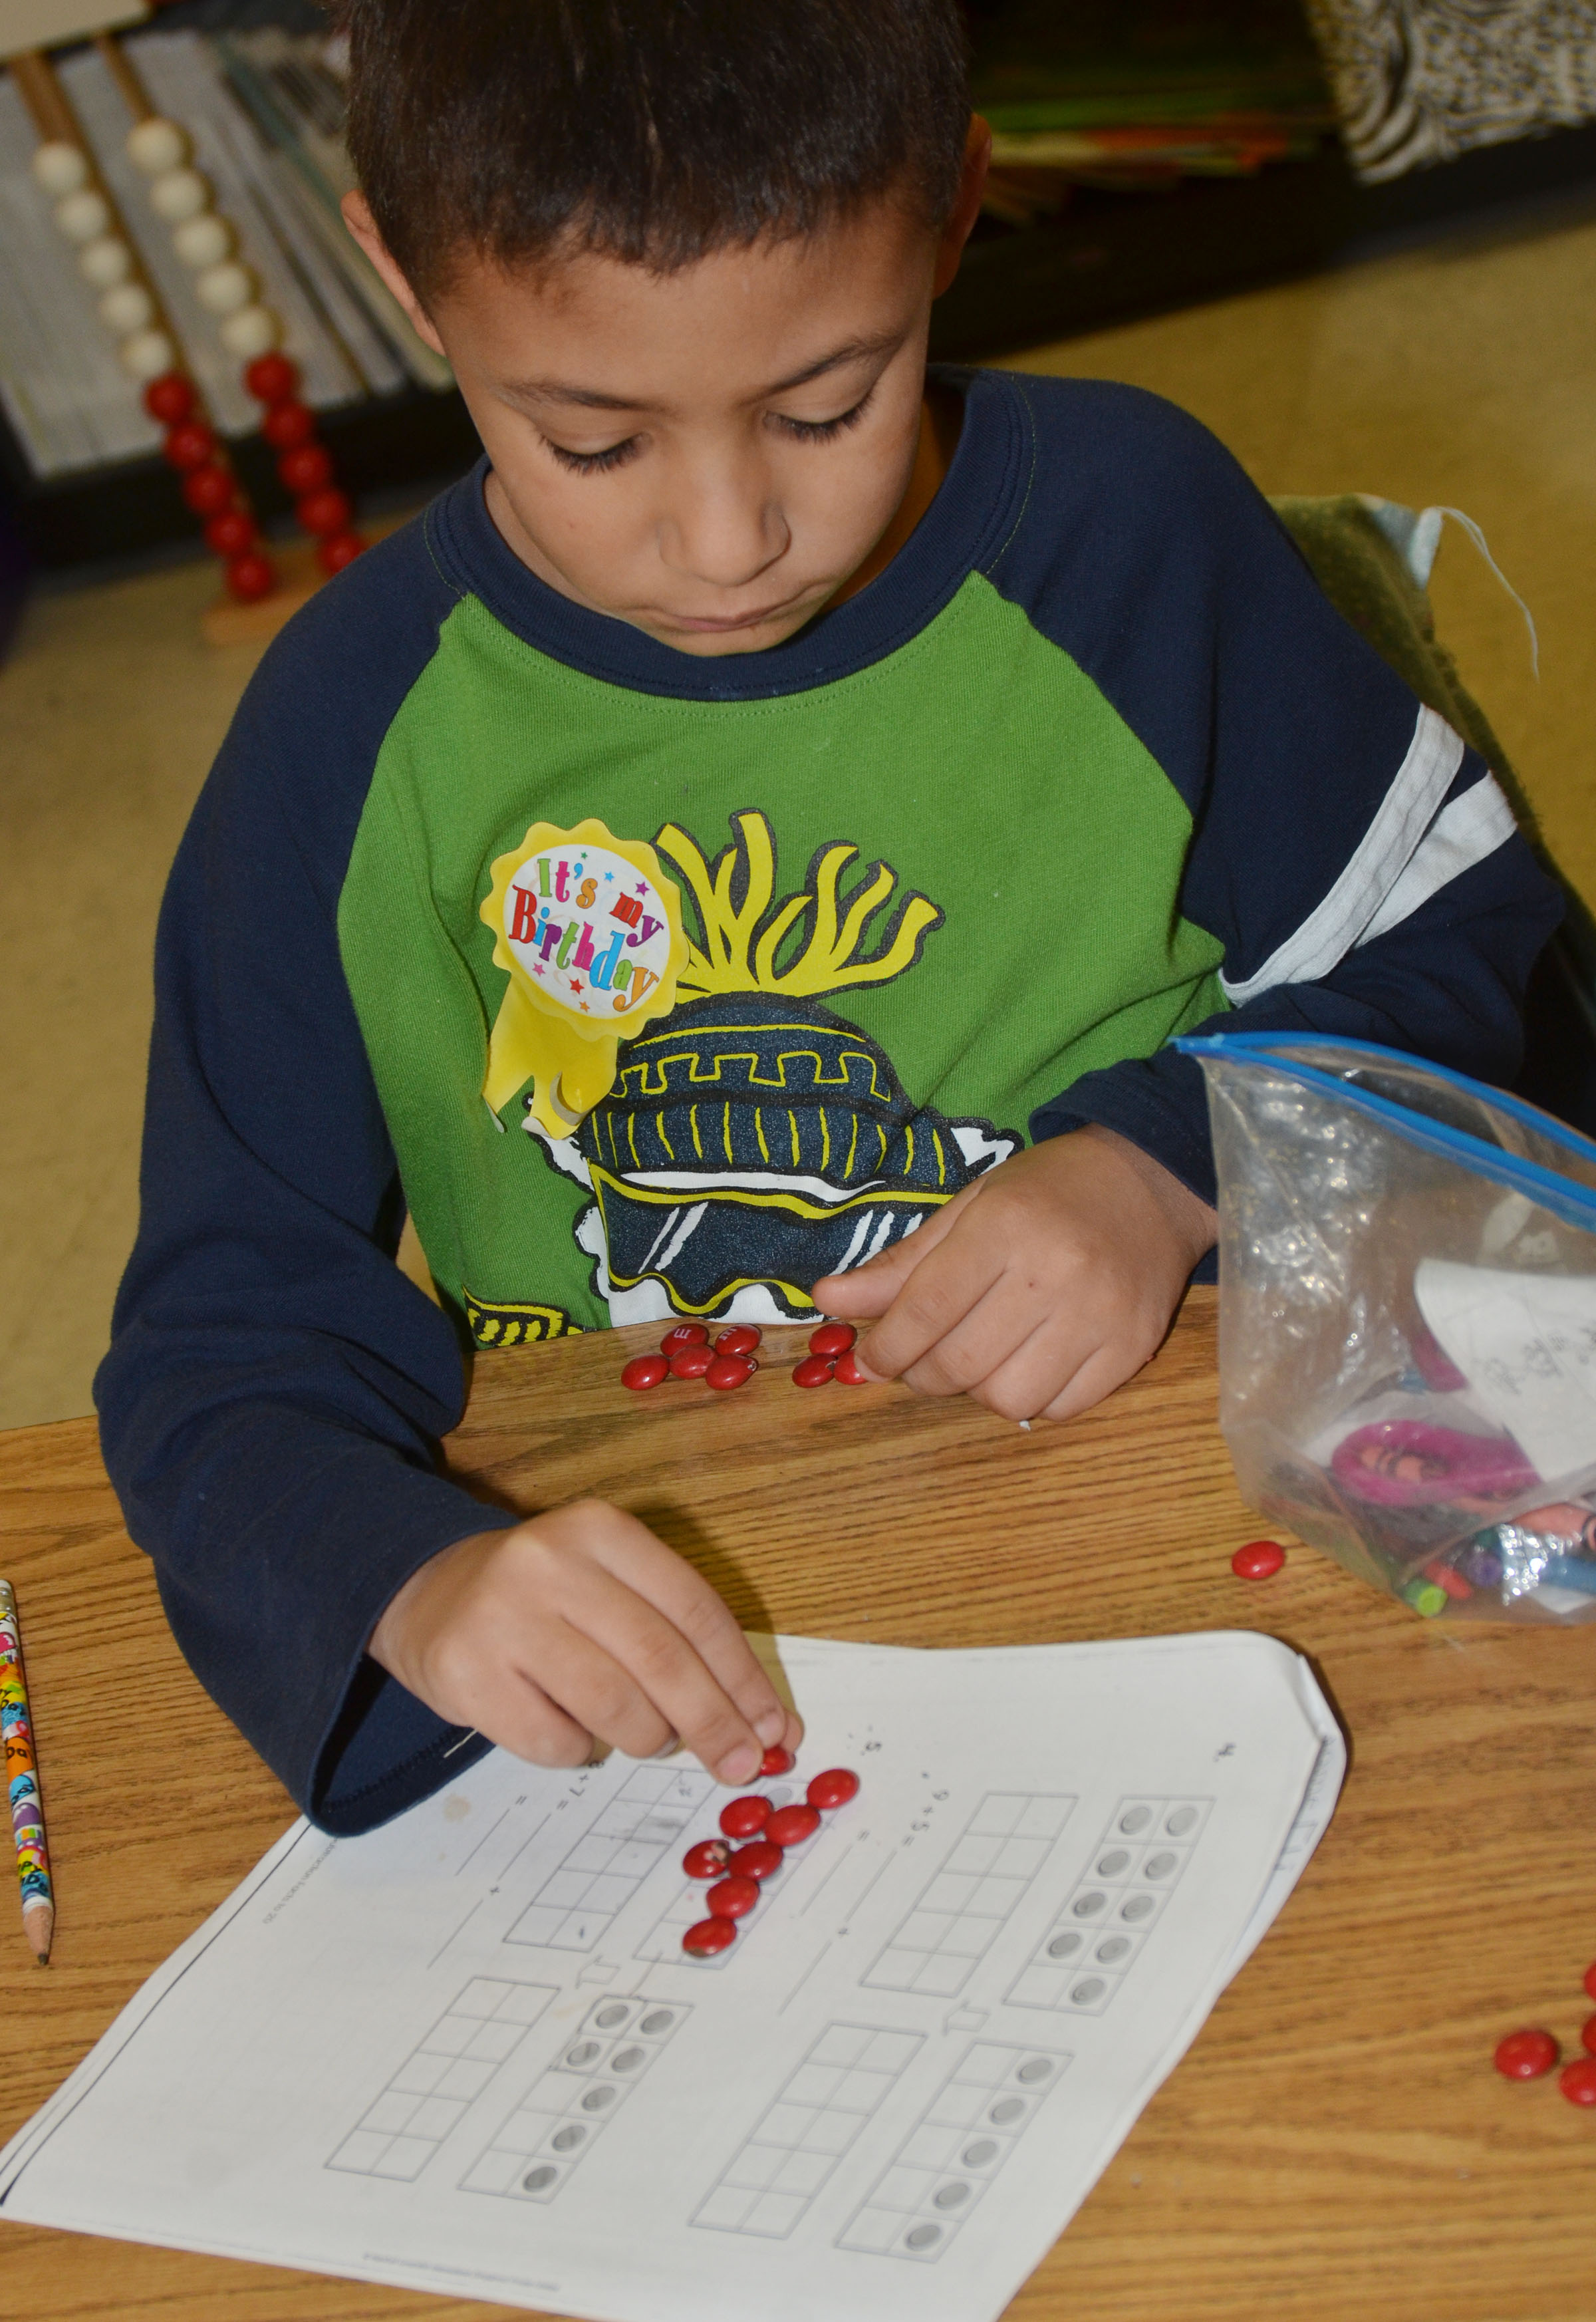 CES first-grader Elijah Williams counts with M&Ms.